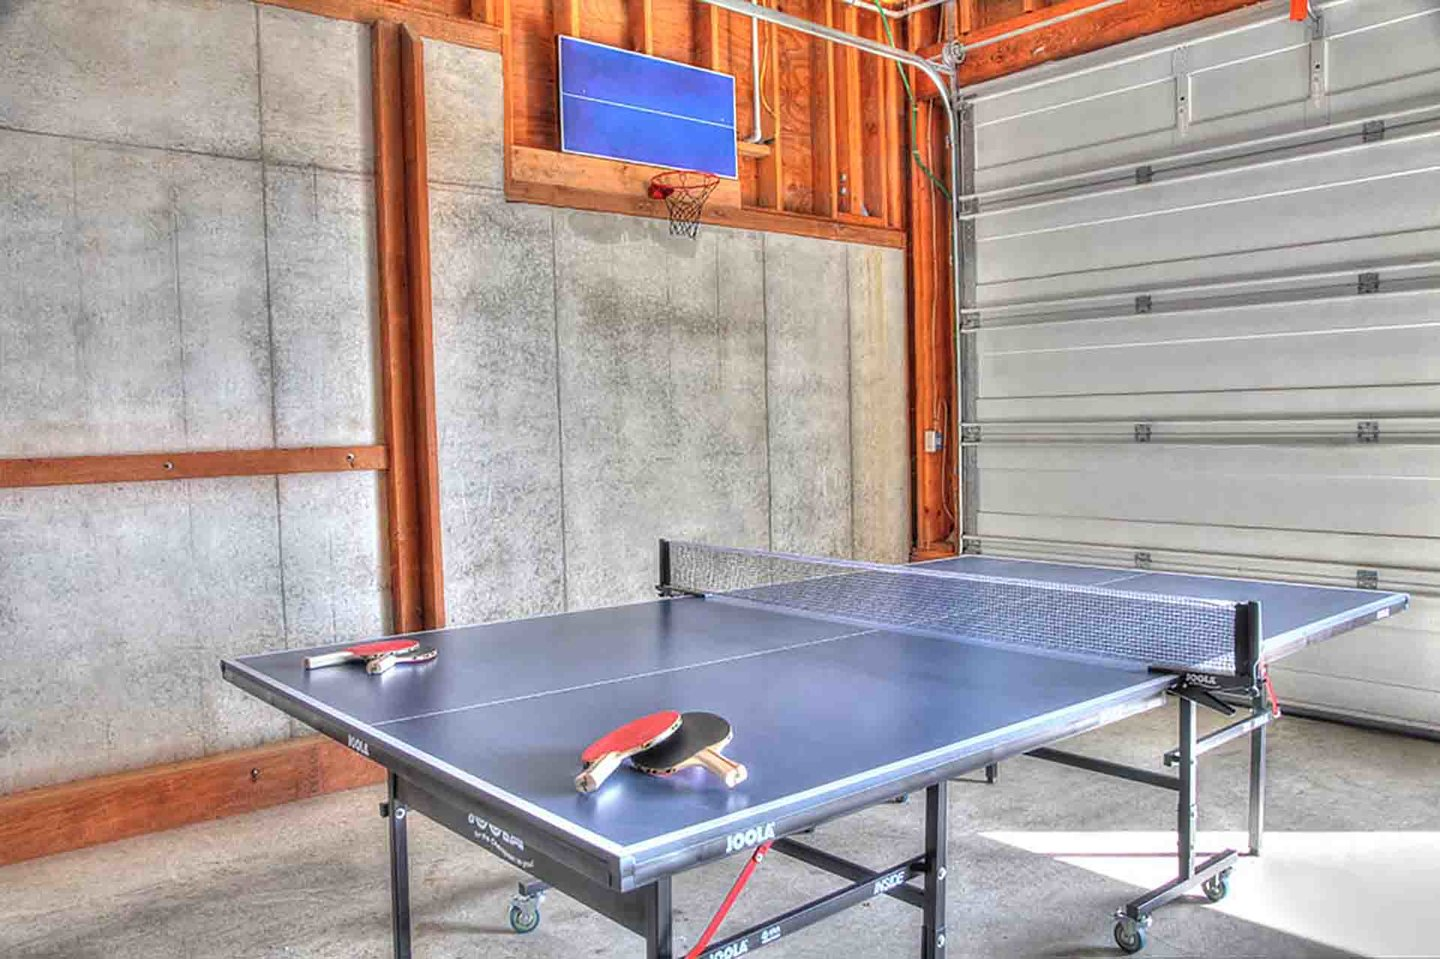 Ping pong game in the garage!